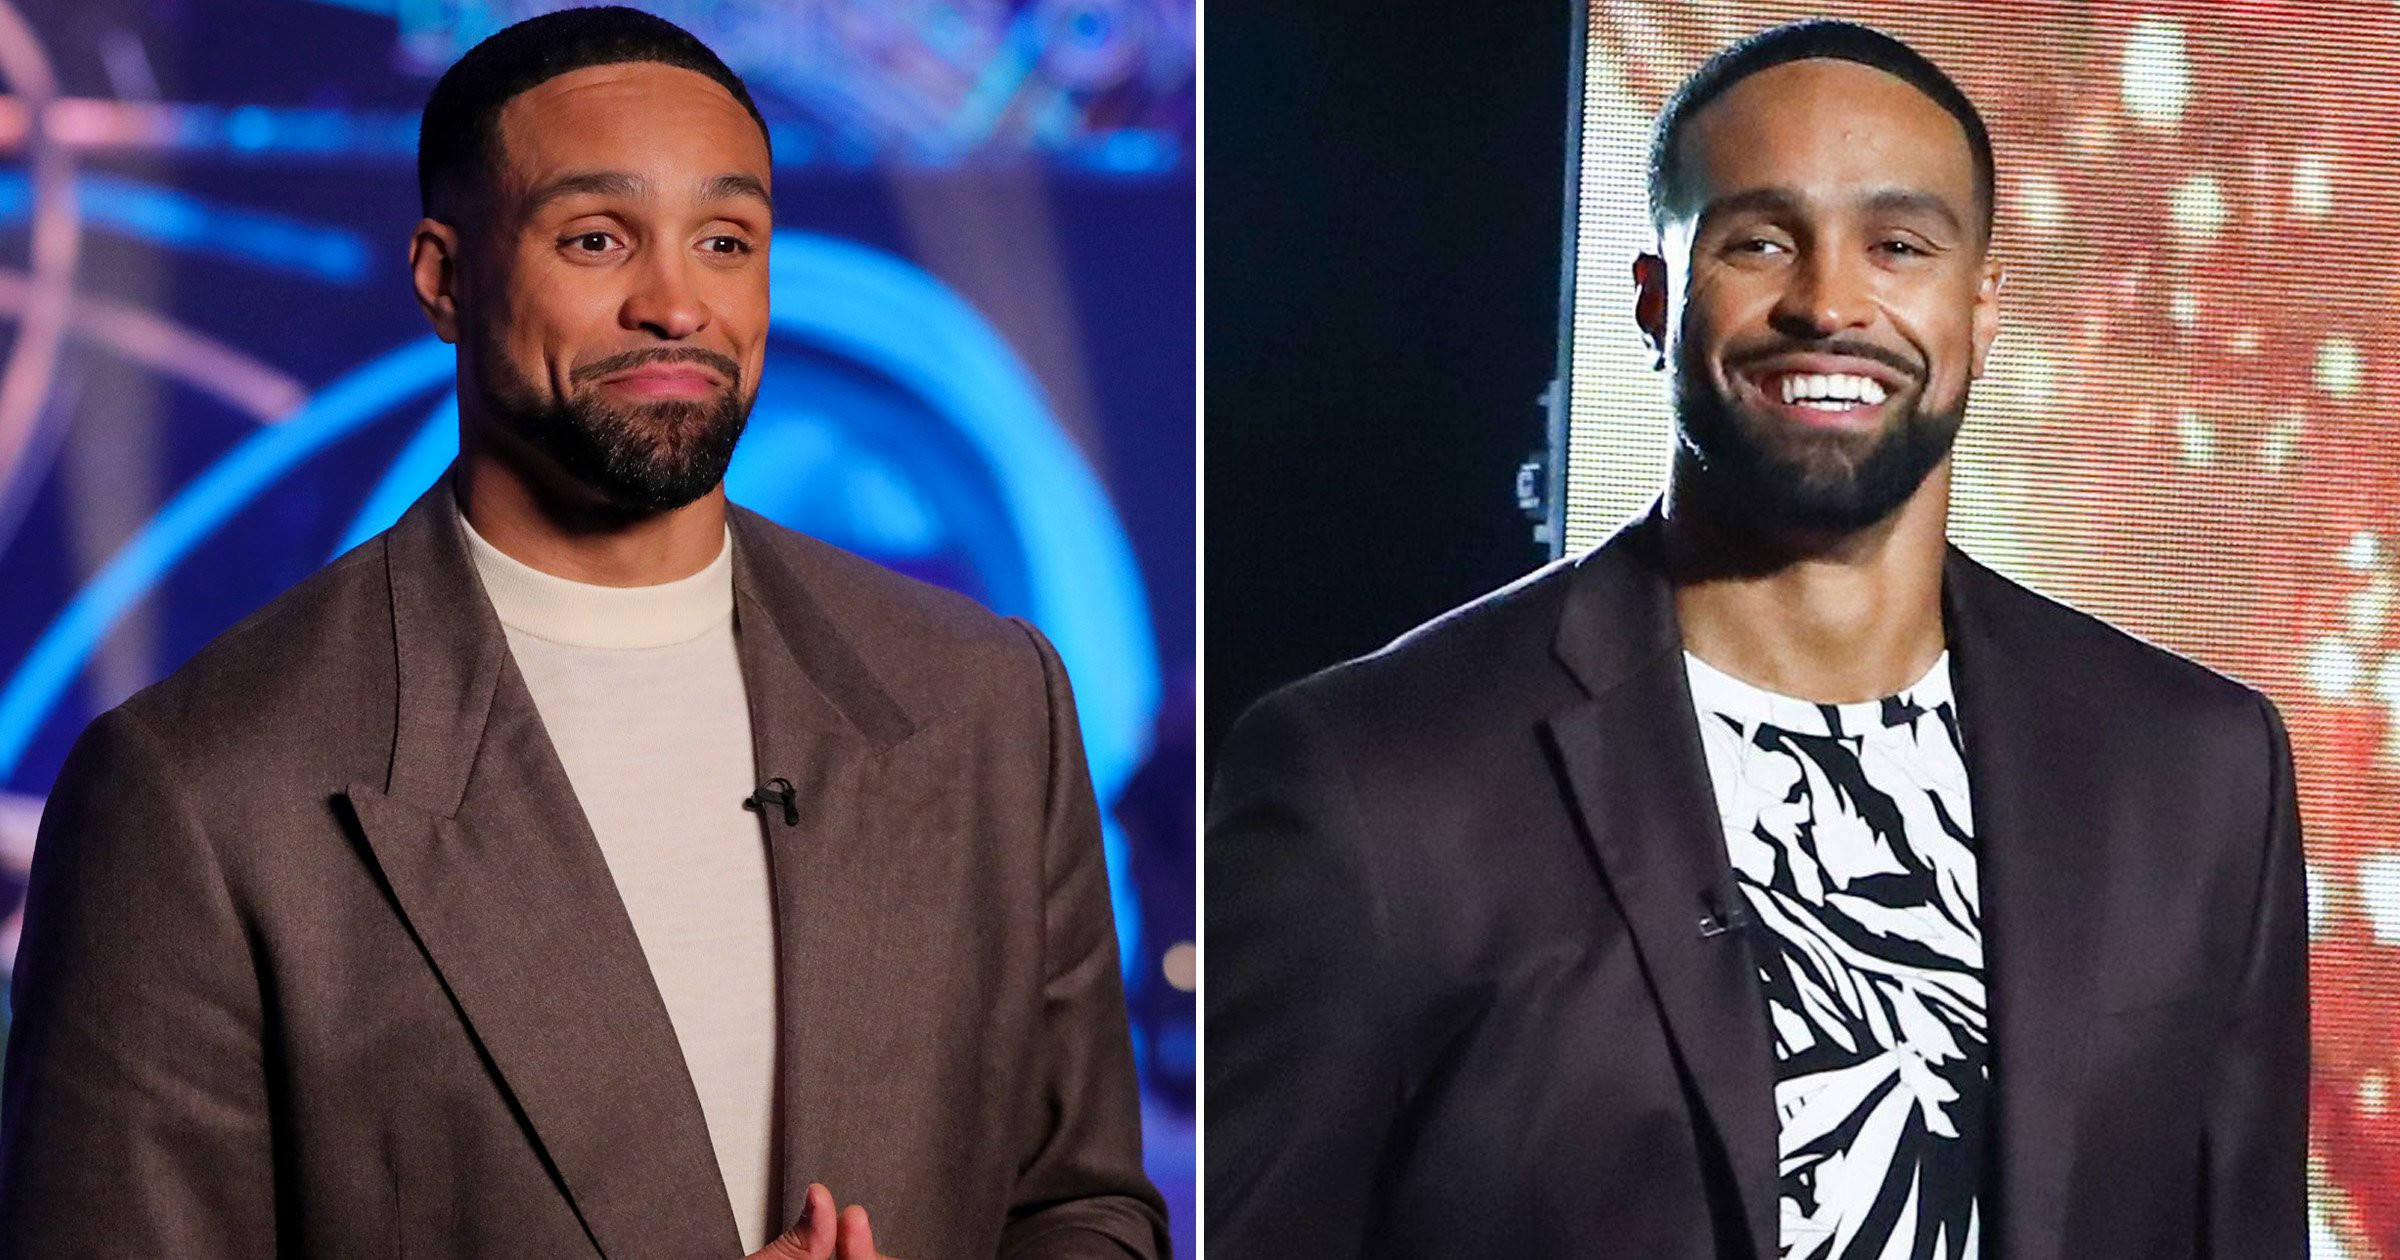 Dancing on Ice judge Ashley Banjo has best response to online troll who slams him for being 'too Ashley Banjo'